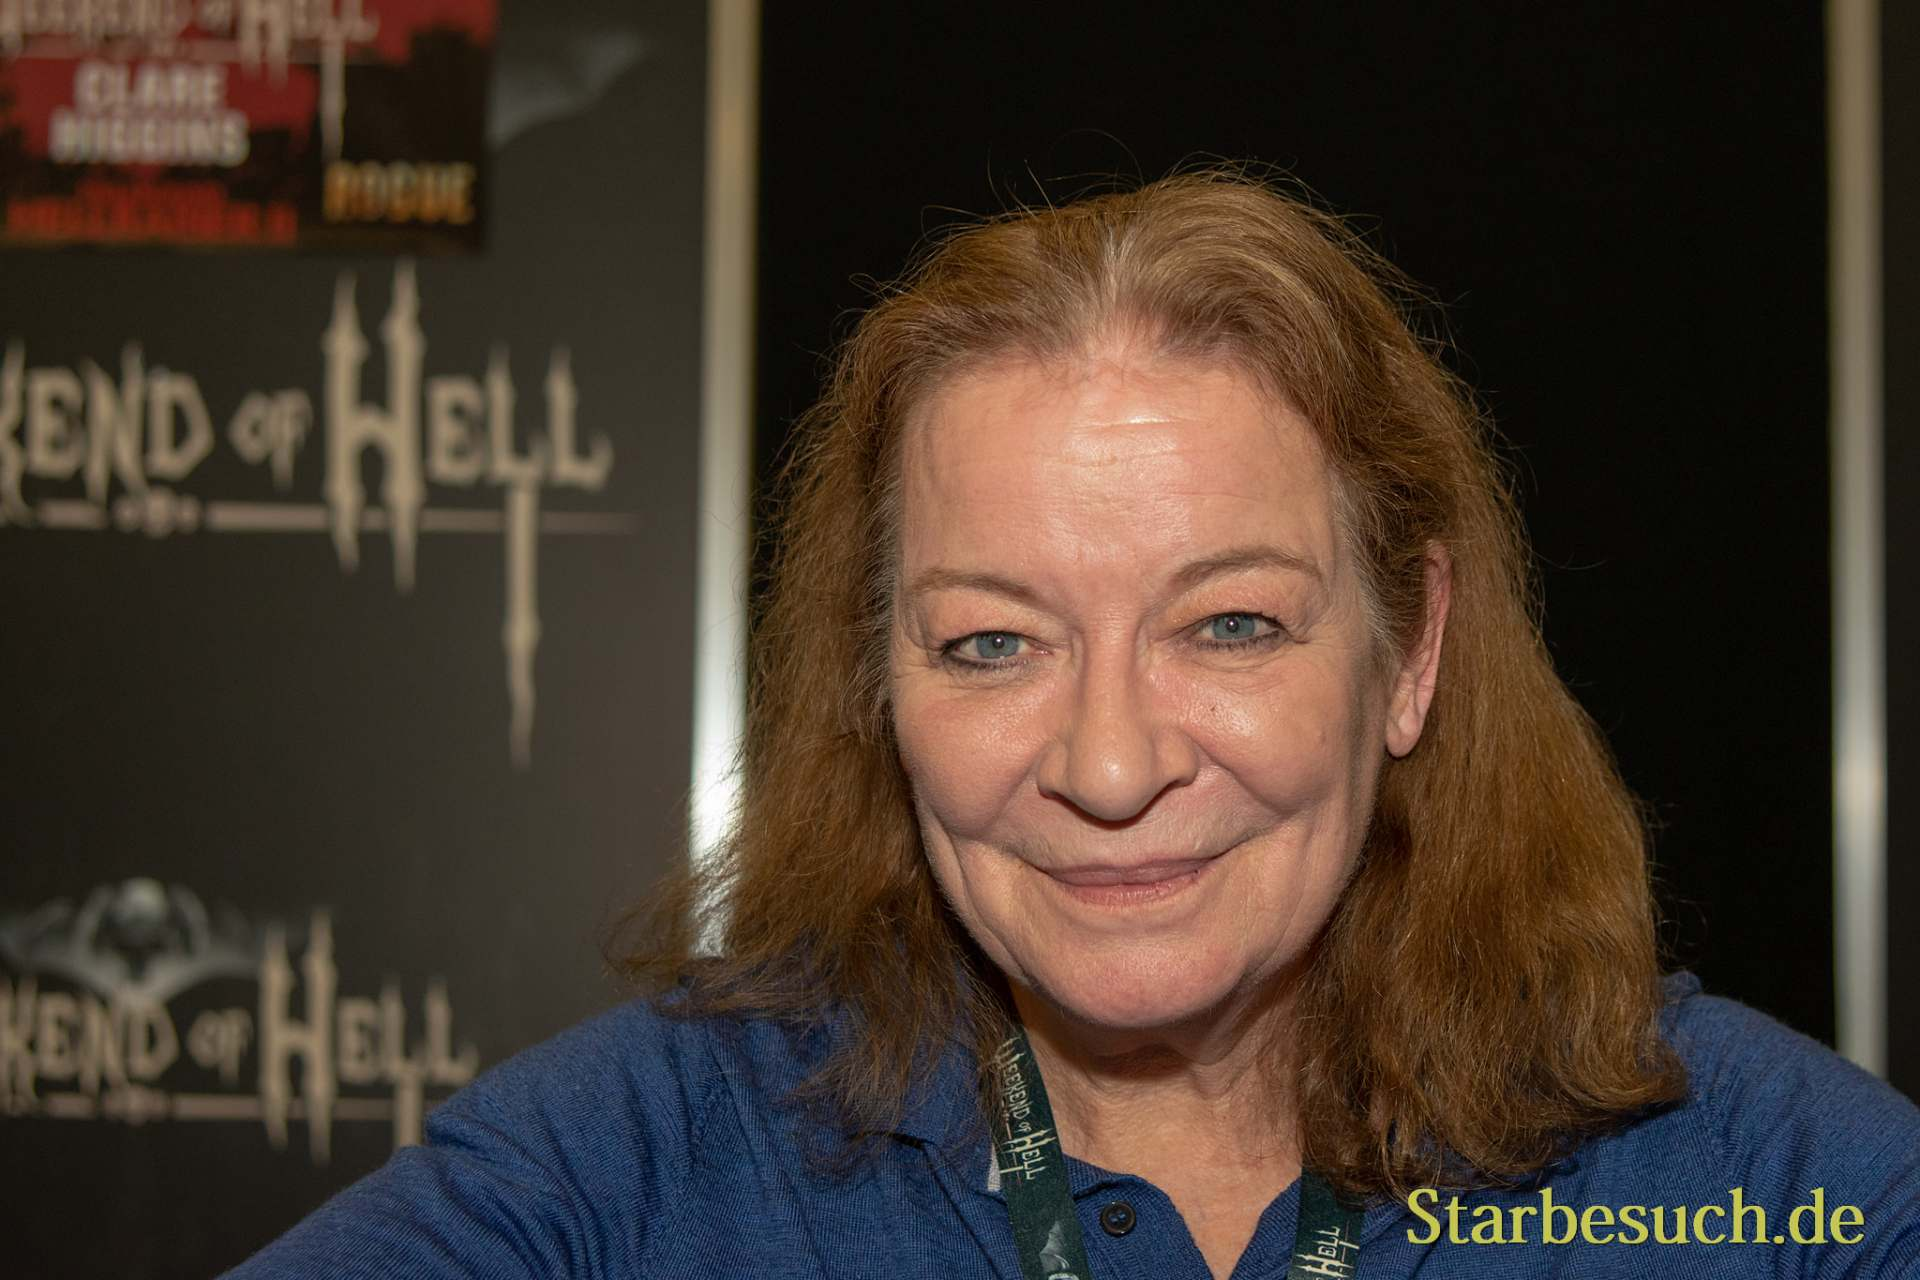 DORTMUND, GERMANY - November 3rd 2018: Clare Higgins at Weekend of Hell 2018